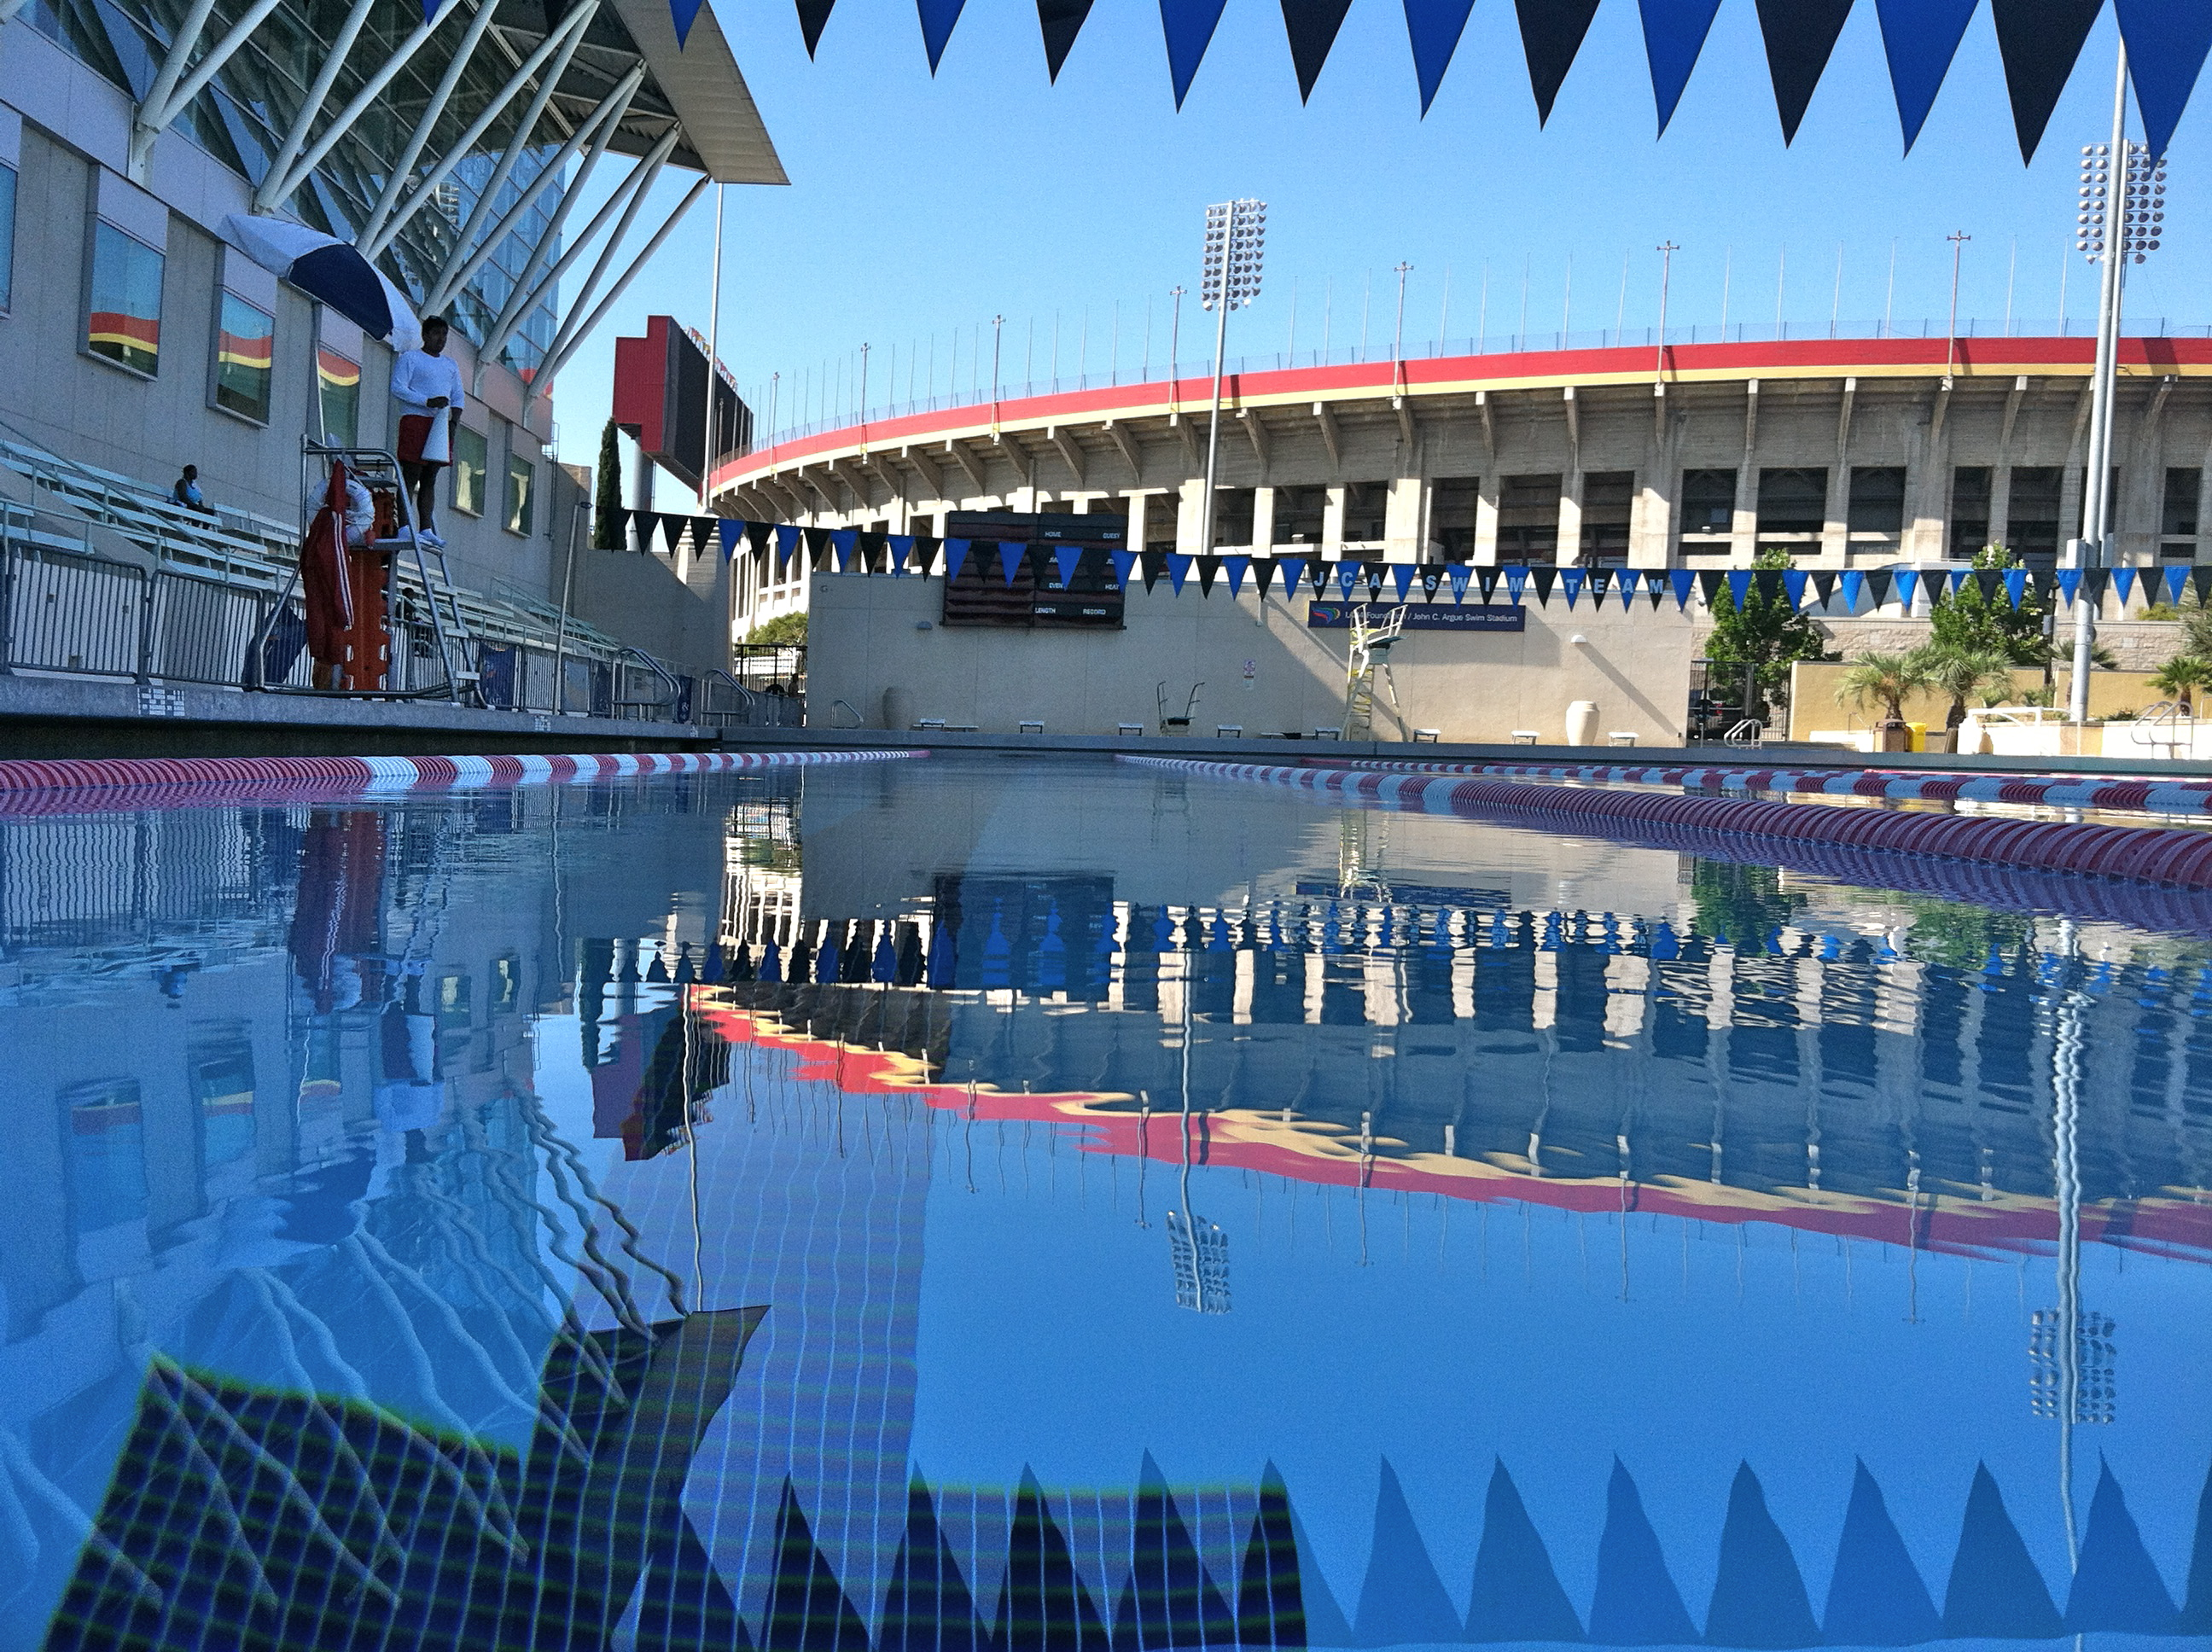 olympic swimming pool 2012. The Olympic Swimming Pool 2012